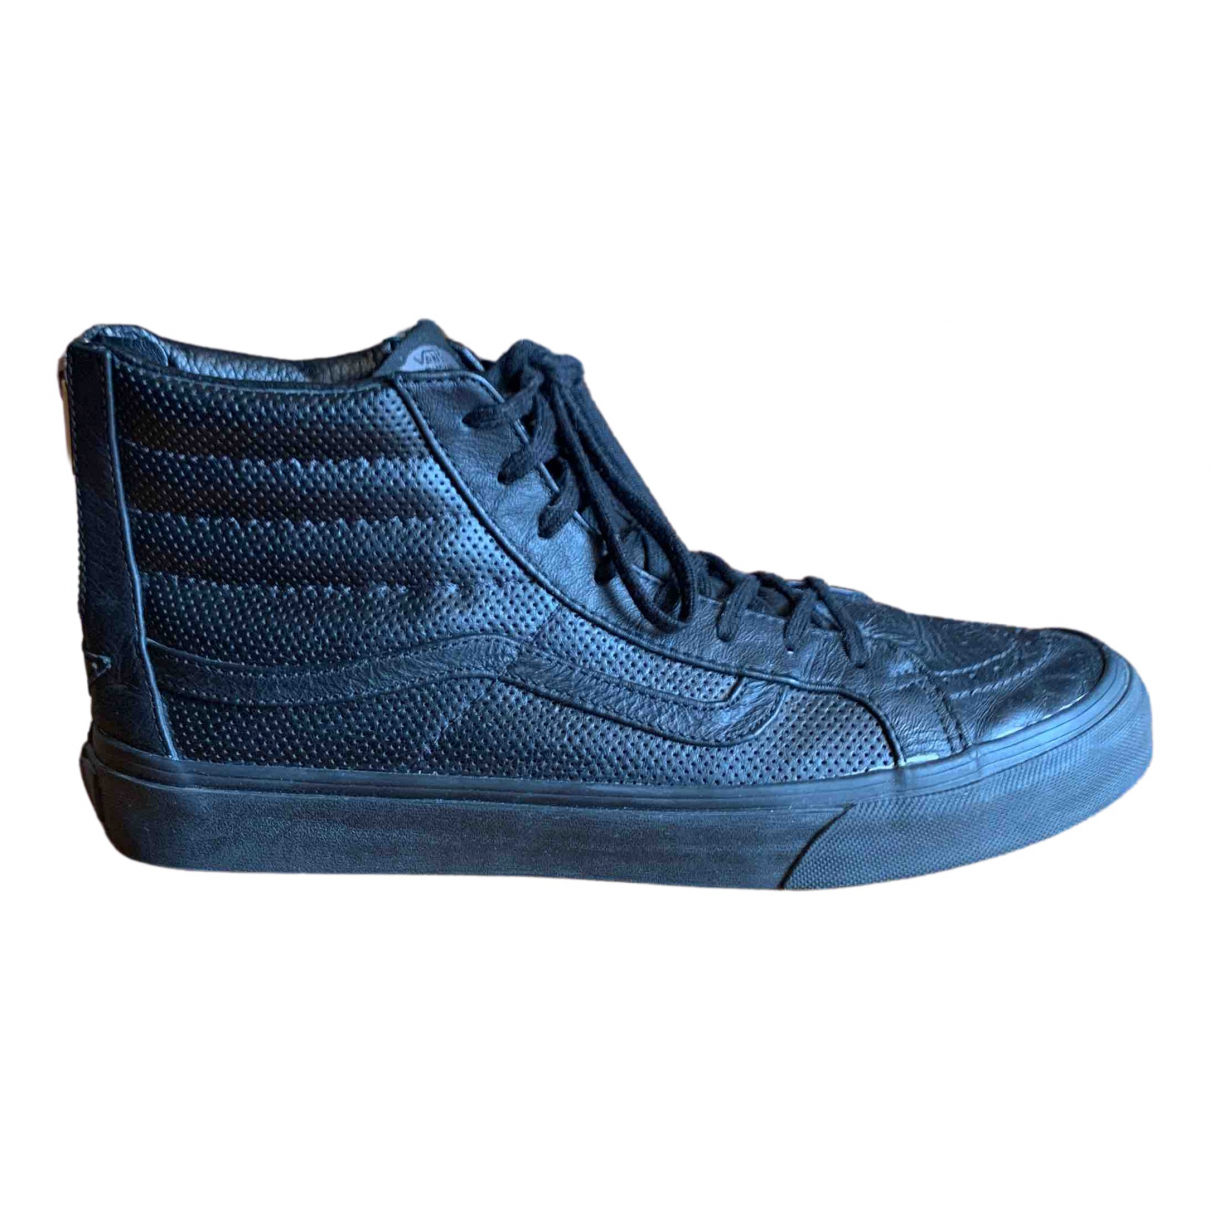 Vans N Black Leather Trainers for Women 10.5 US